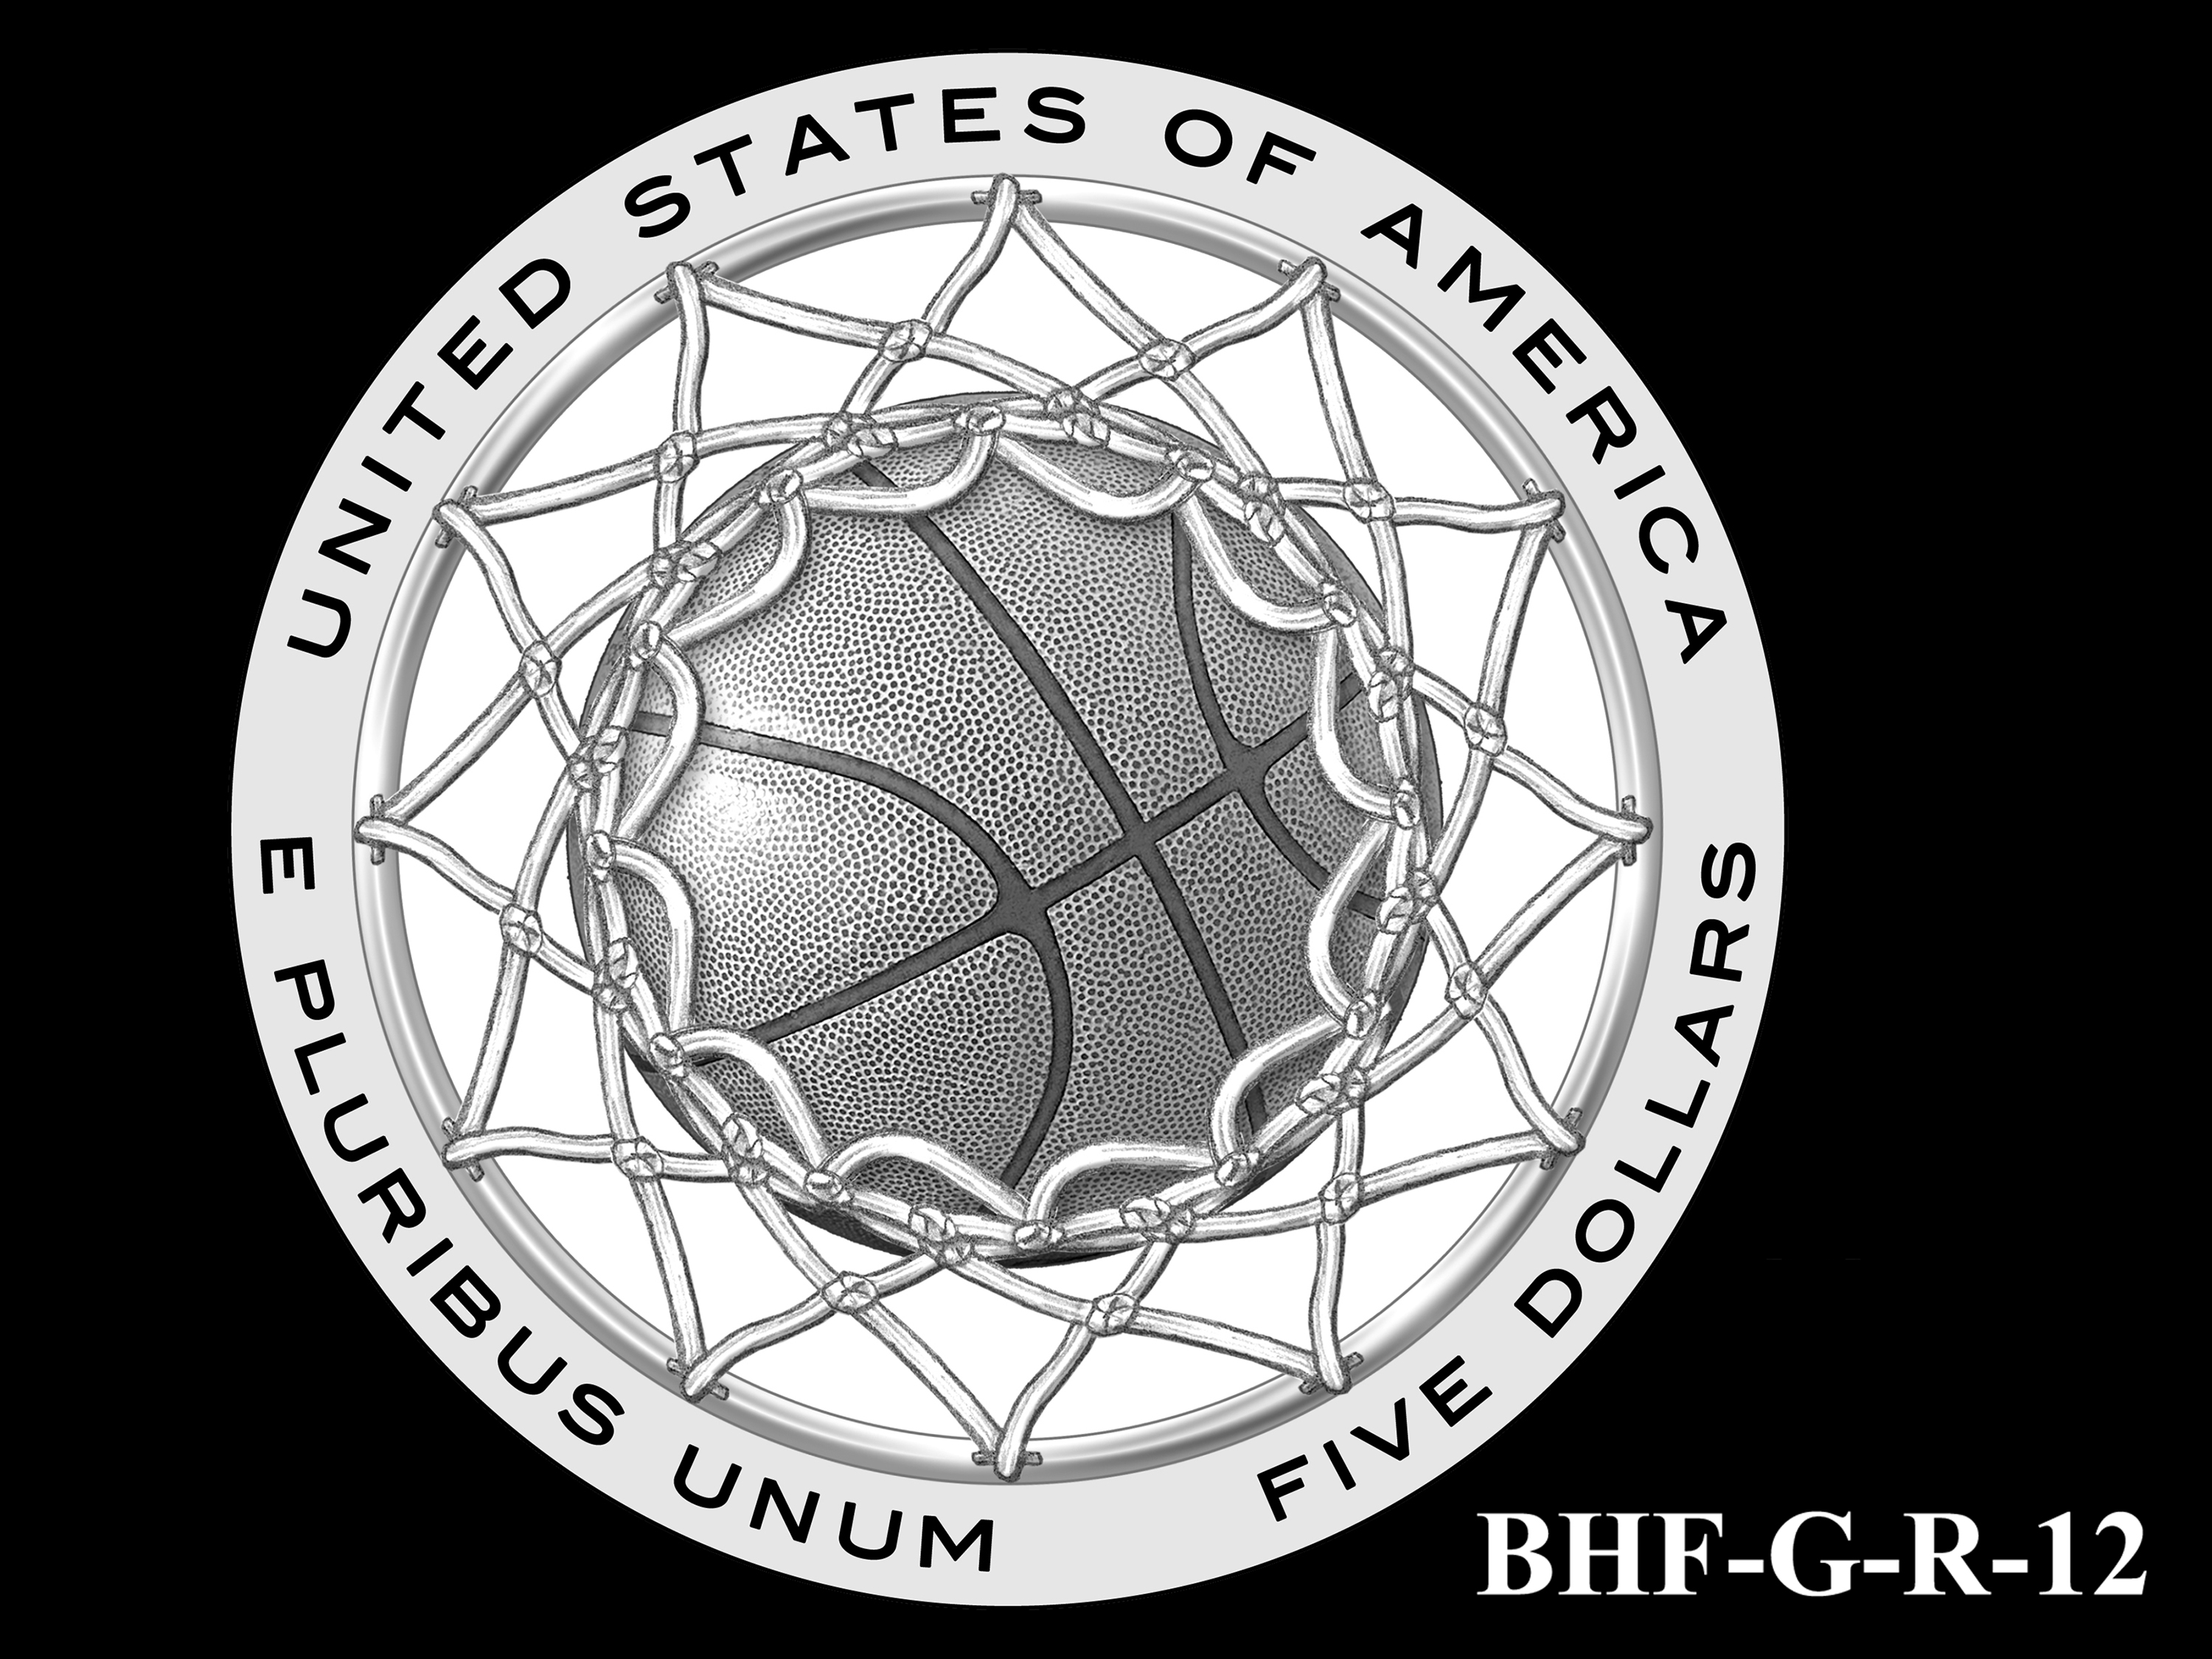 BHF-G-R-12 -- 2020 Basketball Hall of Fame Commemorative Coin Program - Gold Reverse